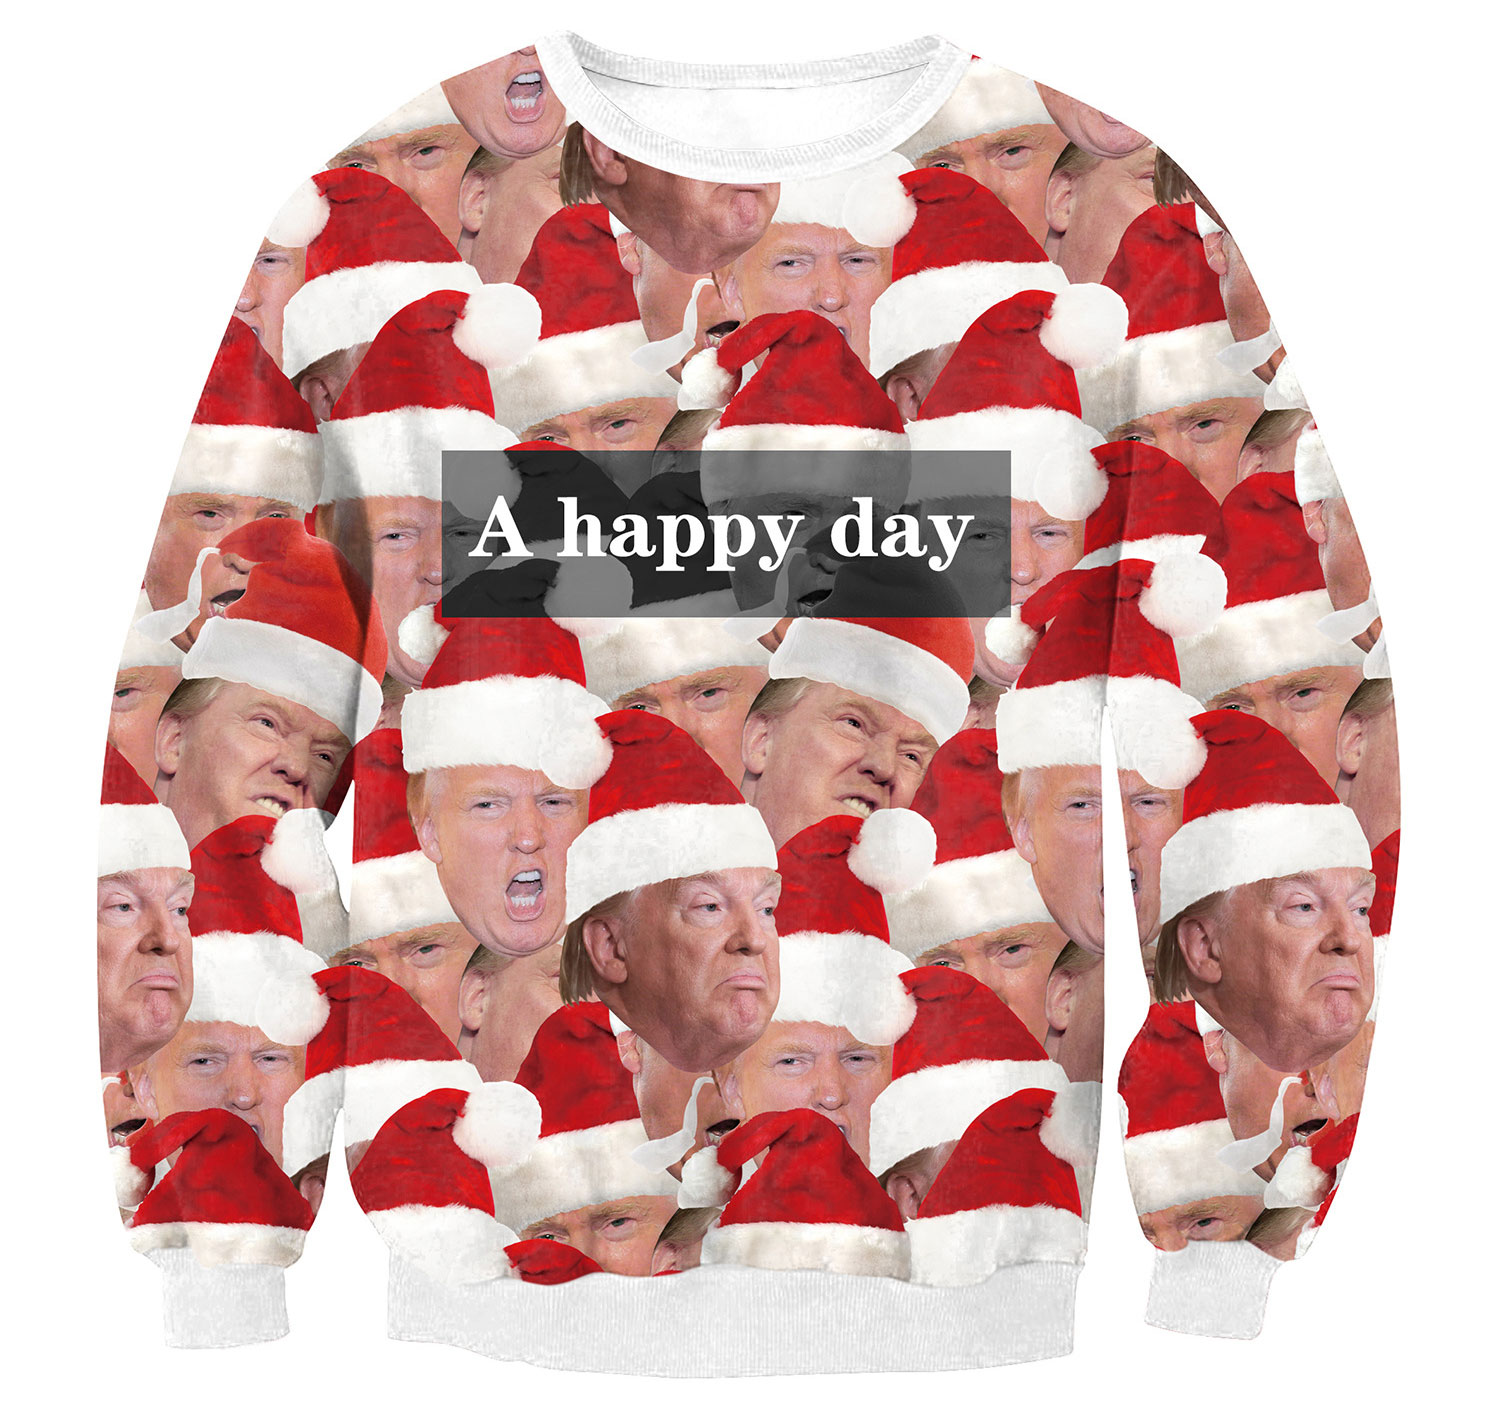 Hot on Taobao: Creepy Donald Trump Christmas Sweater